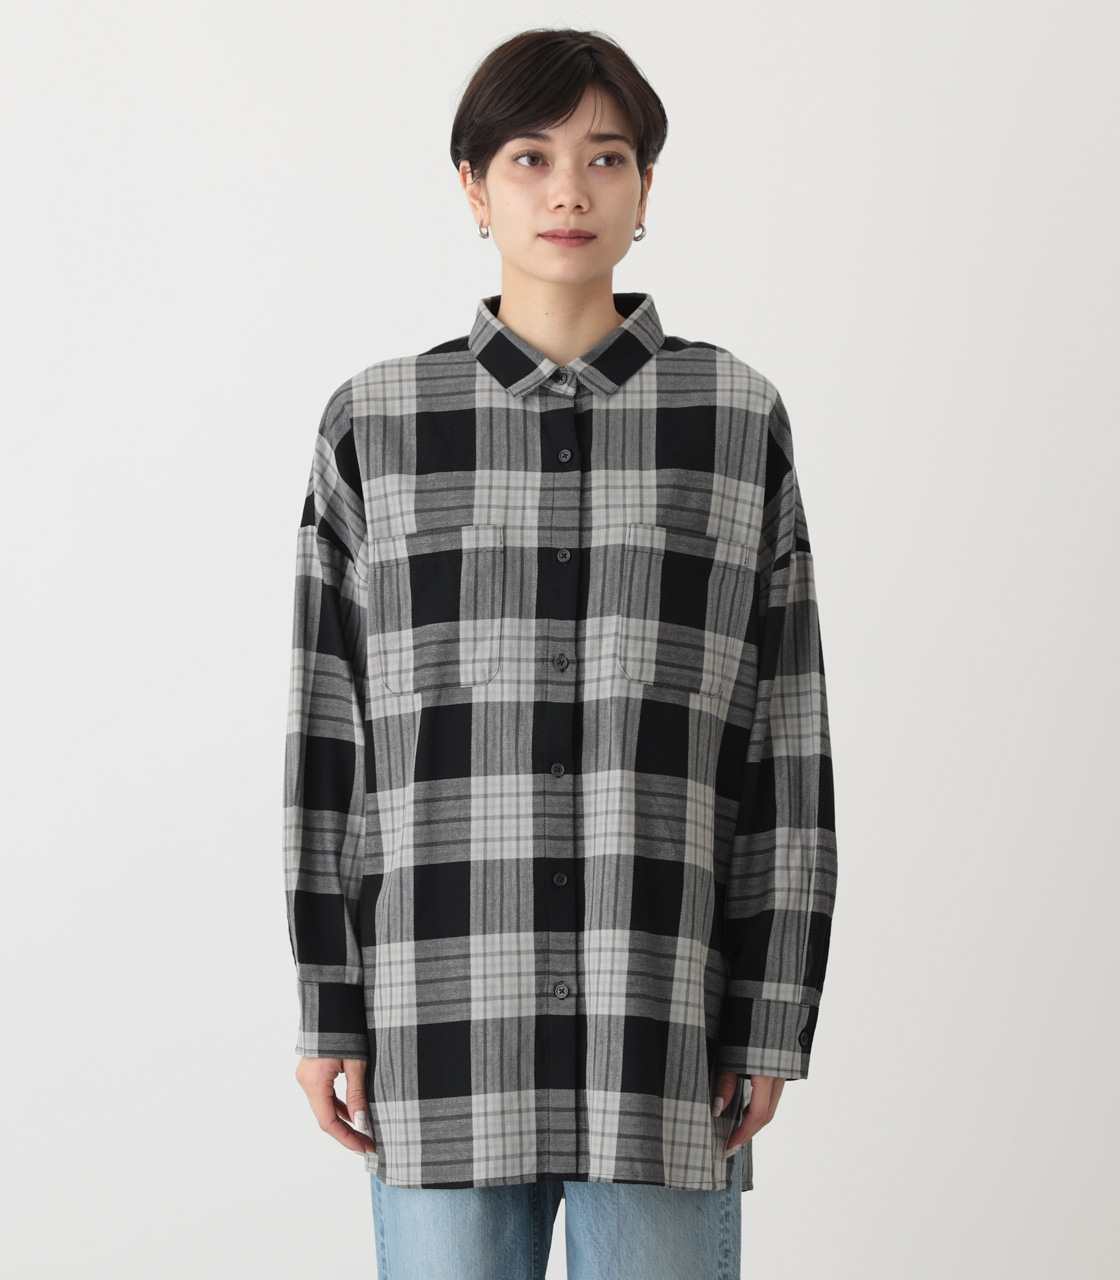 CHECK OVER SHIRT/チェックオーバーシャツ 詳細画像 柄BLK 5